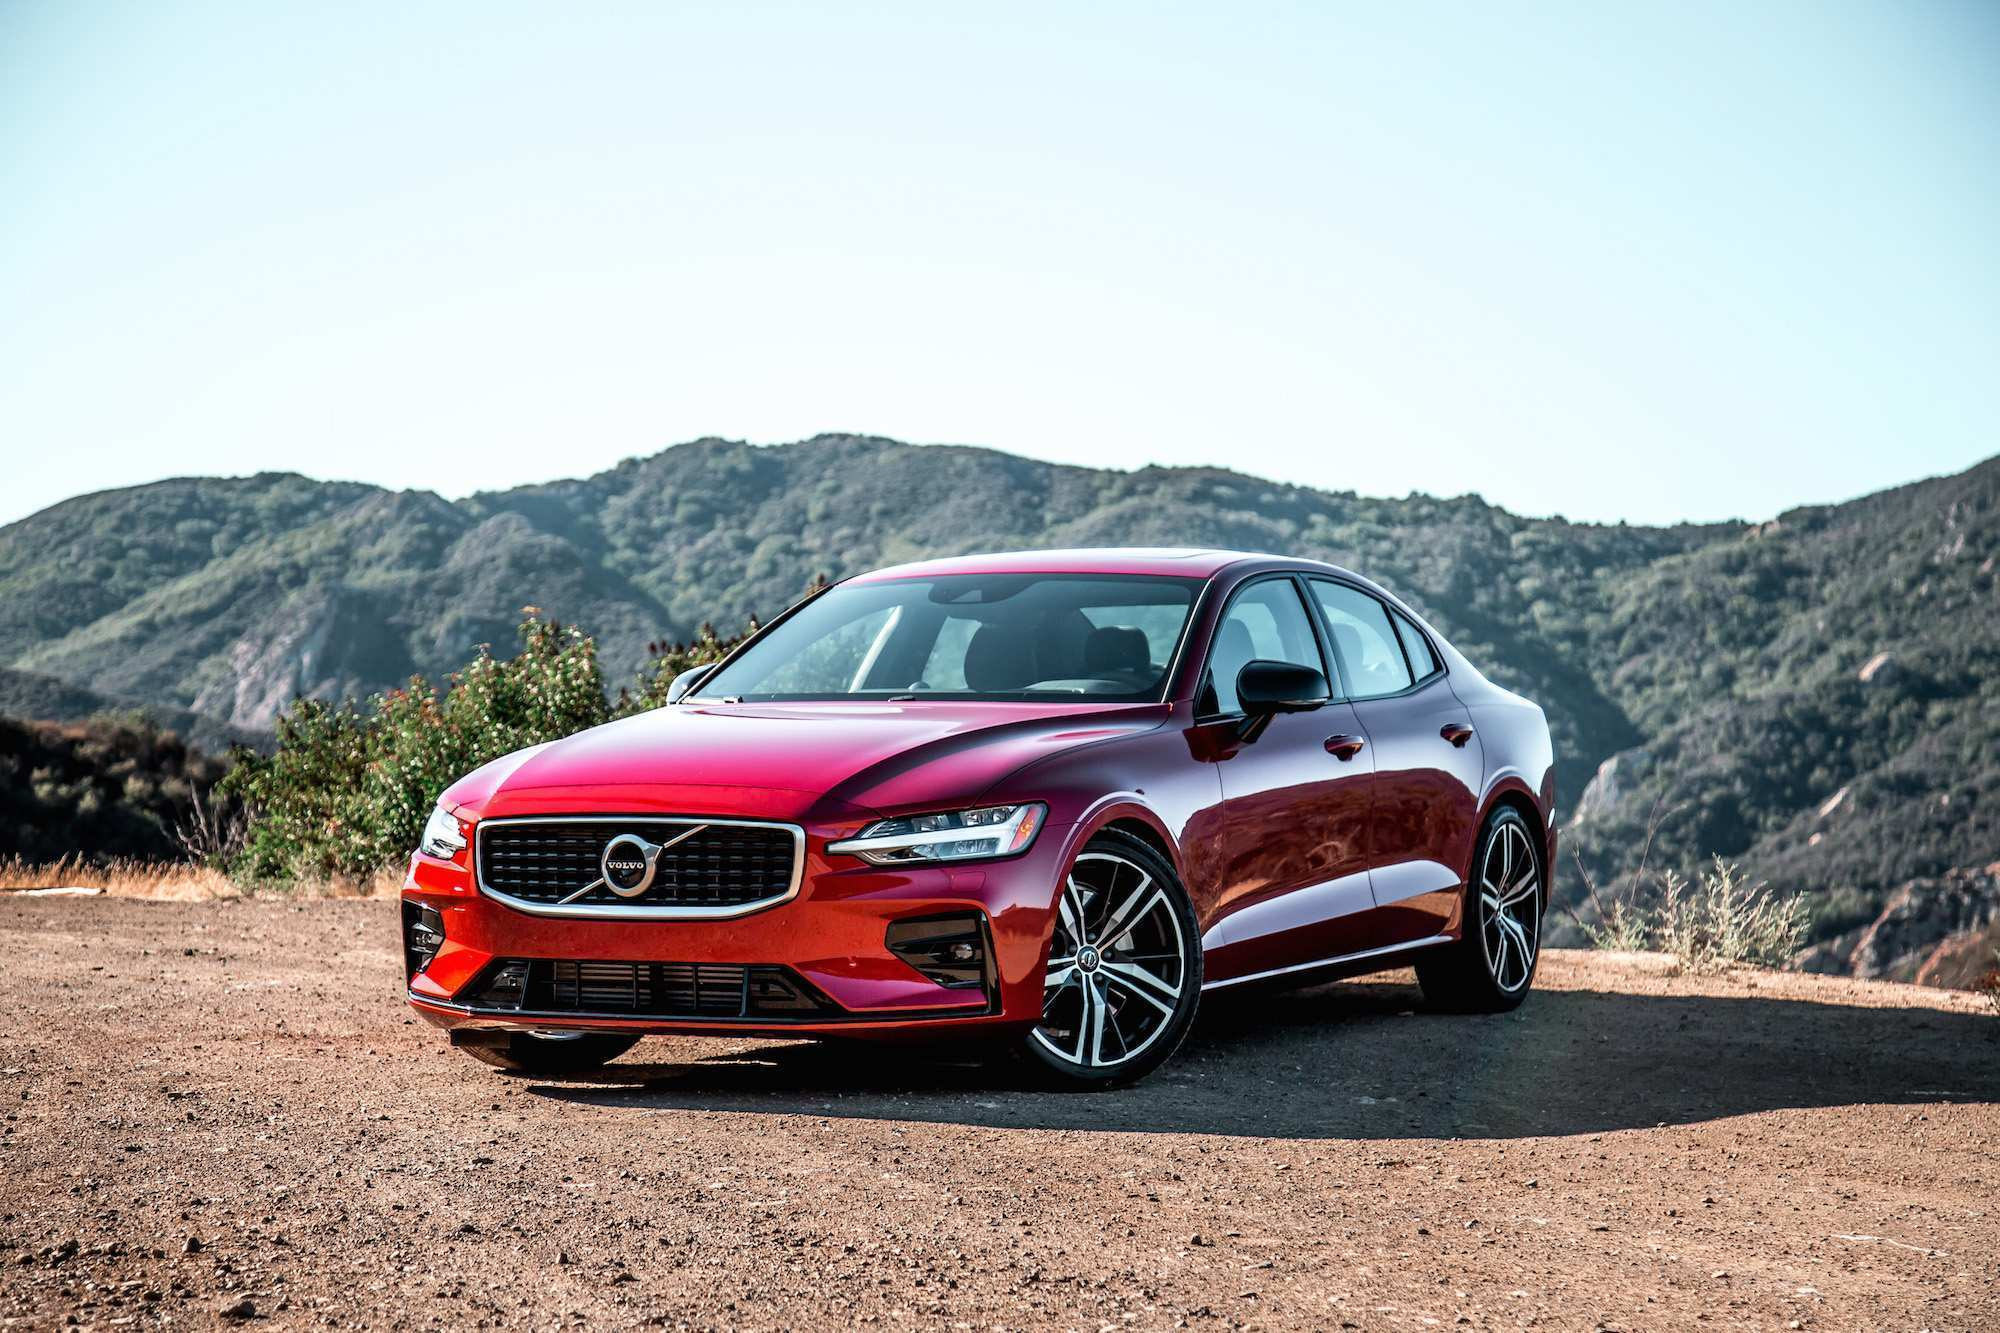 18 Best Review 2020 Volvo S60 Polestar Style for 2020 Volvo S60 Polestar